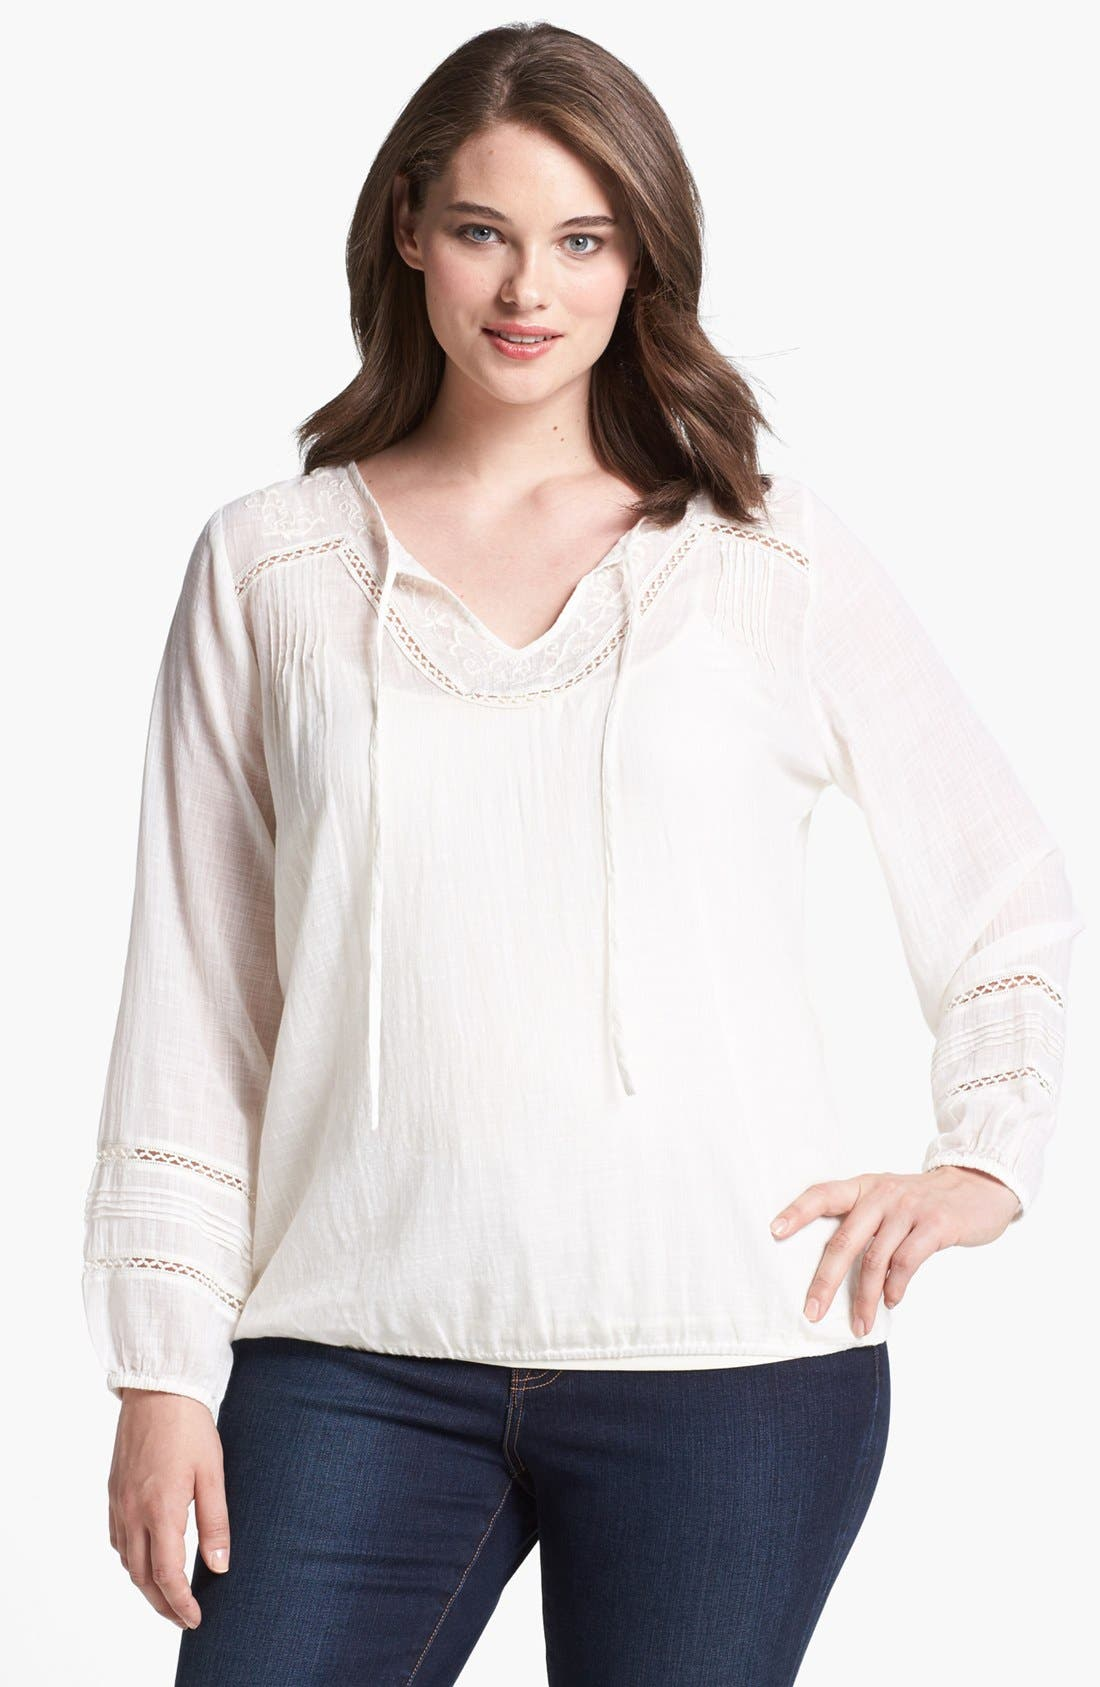 Alternate Image 1 Selected - Lucky Brand 'Corabelle' Embroidered Tunic (Plus Size)